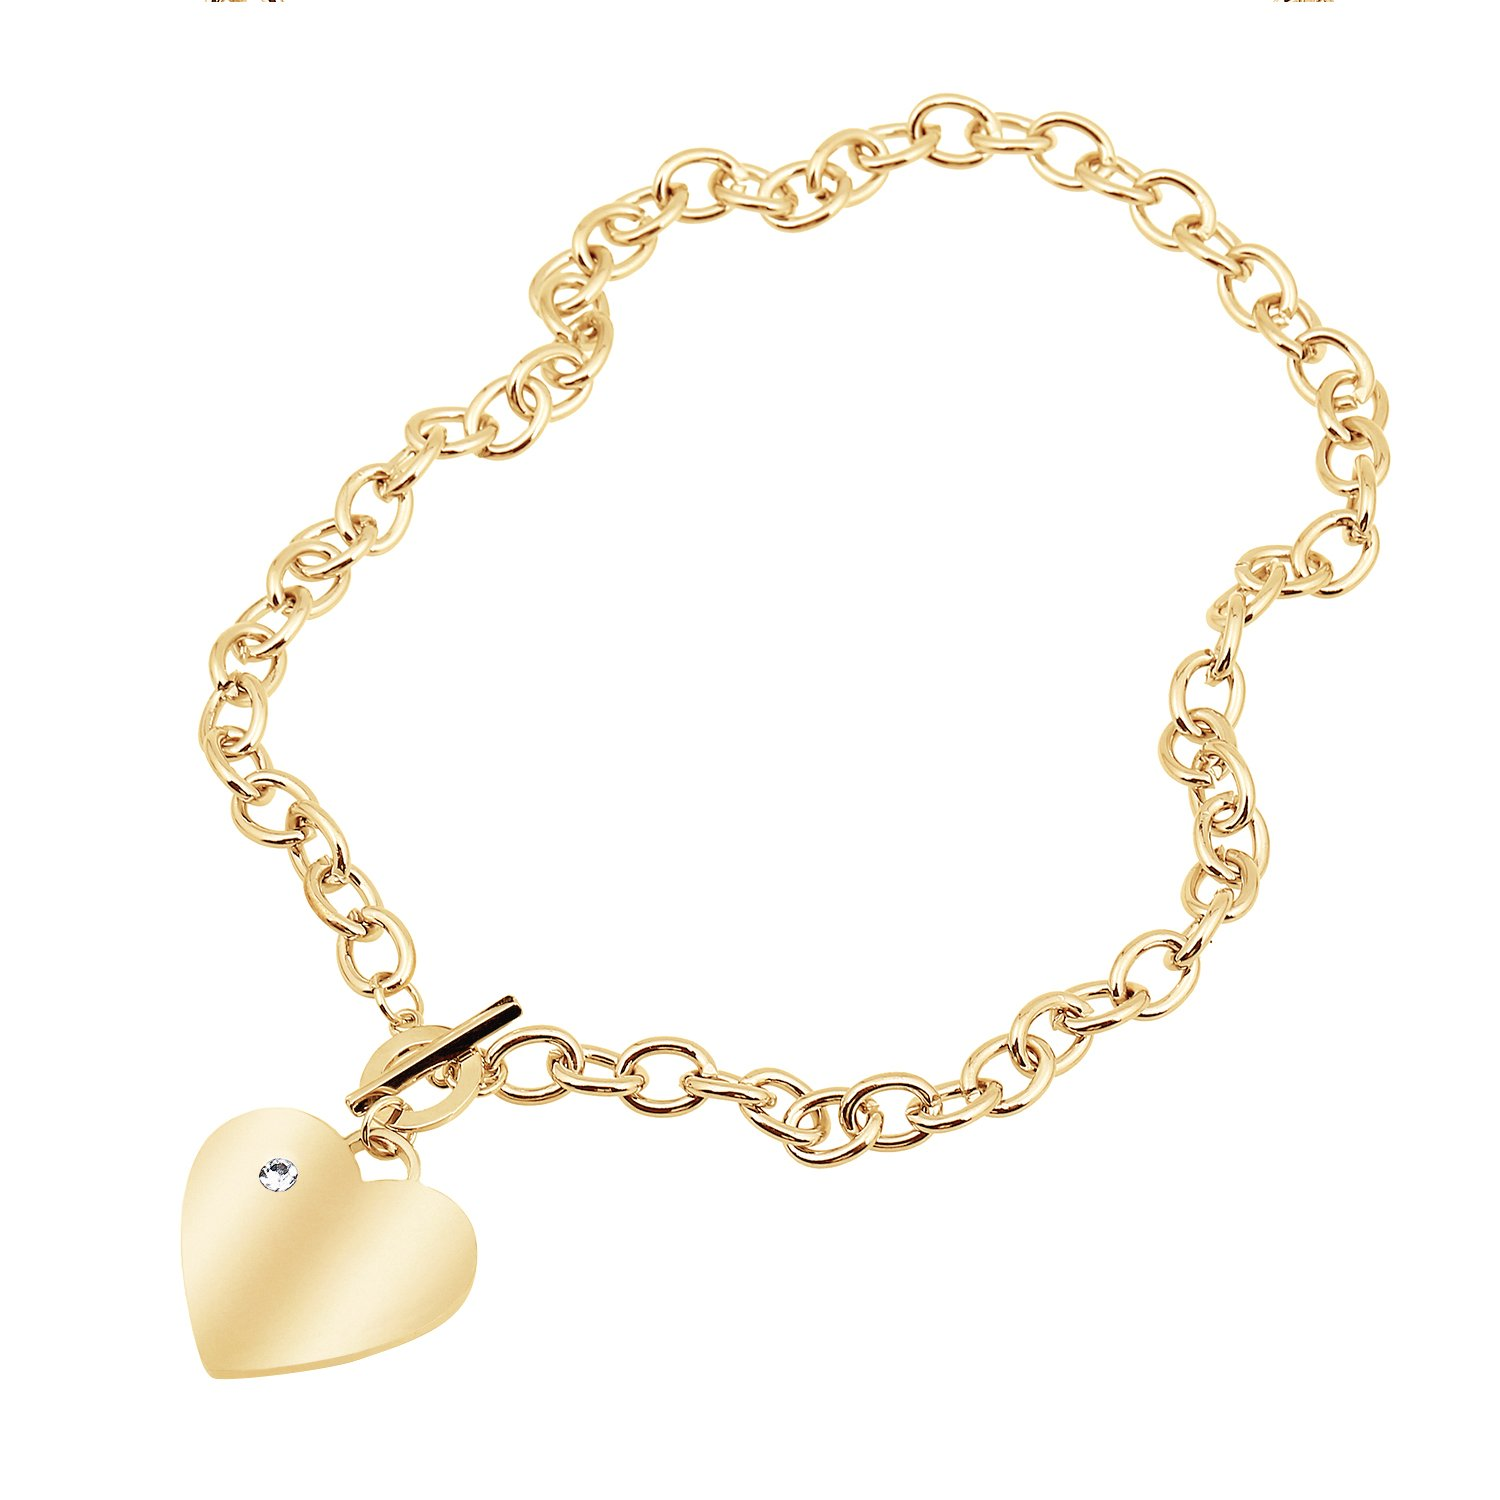 D EXCEED Heart Penant Necklace Heart Pendant Cable Chain Necklace with Toggle Clasp 20 inches